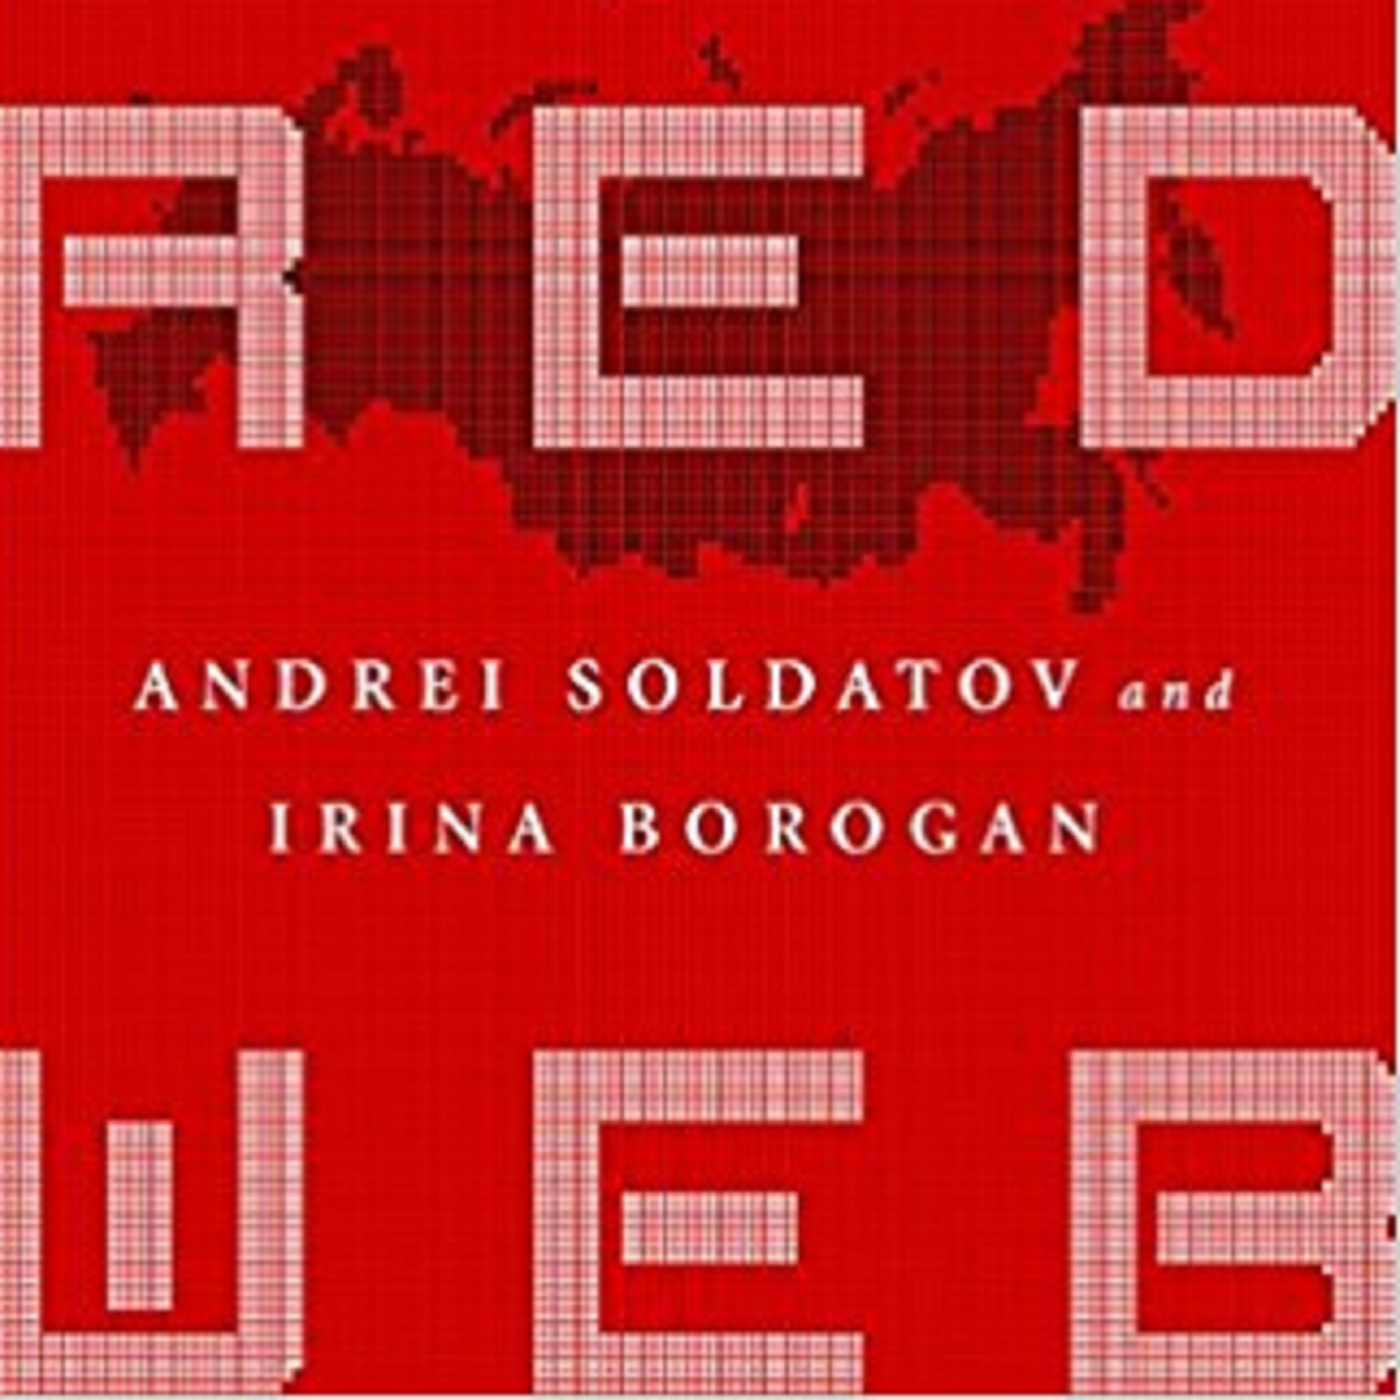 The Red Web: Russian Spying, Internet Controls, Protests and Counter Protests From Soviets to Putin